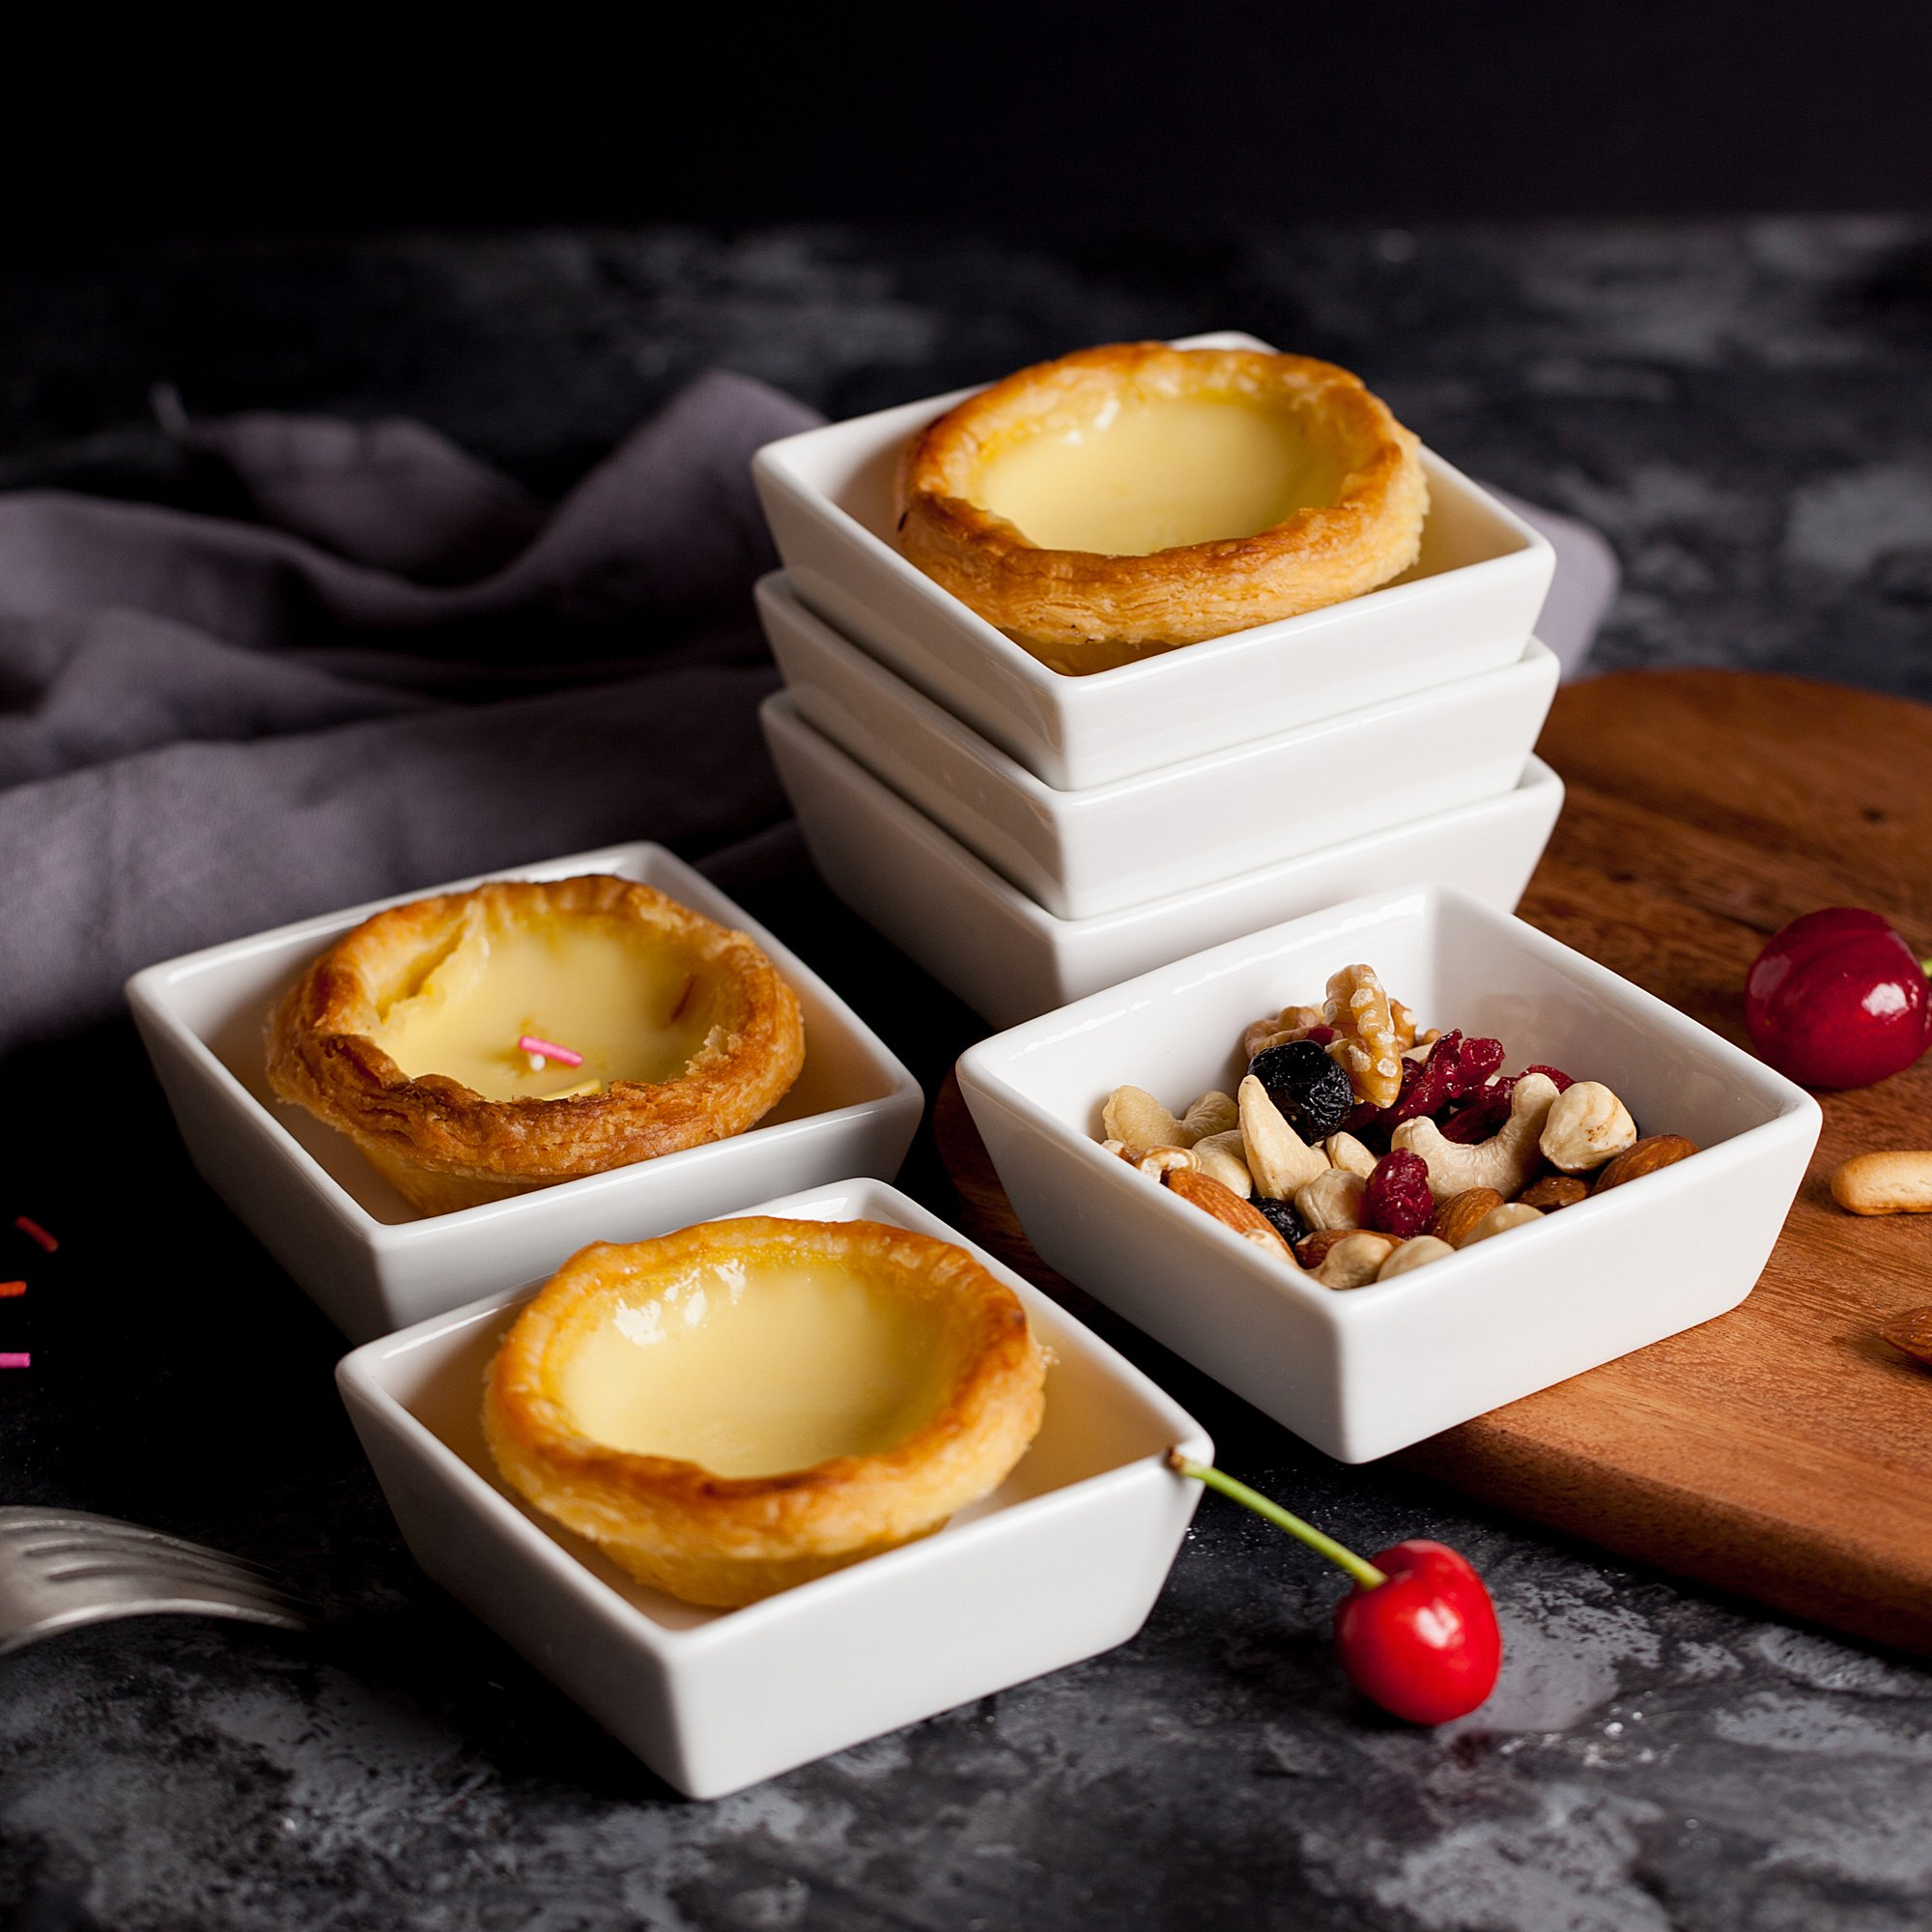 BTäT- Ramekins 4 oz Square, Set of 6 Ramekins for Baking, Creme Brulee Dishes, Souffle Cups, Flan Pan, Sauce Cups, Custard Cups, Pudding Cups, Desert Bowls, Dipping Bowls, Baking Bowls, Small Ramekins by Brew To A Tea (Image #2)